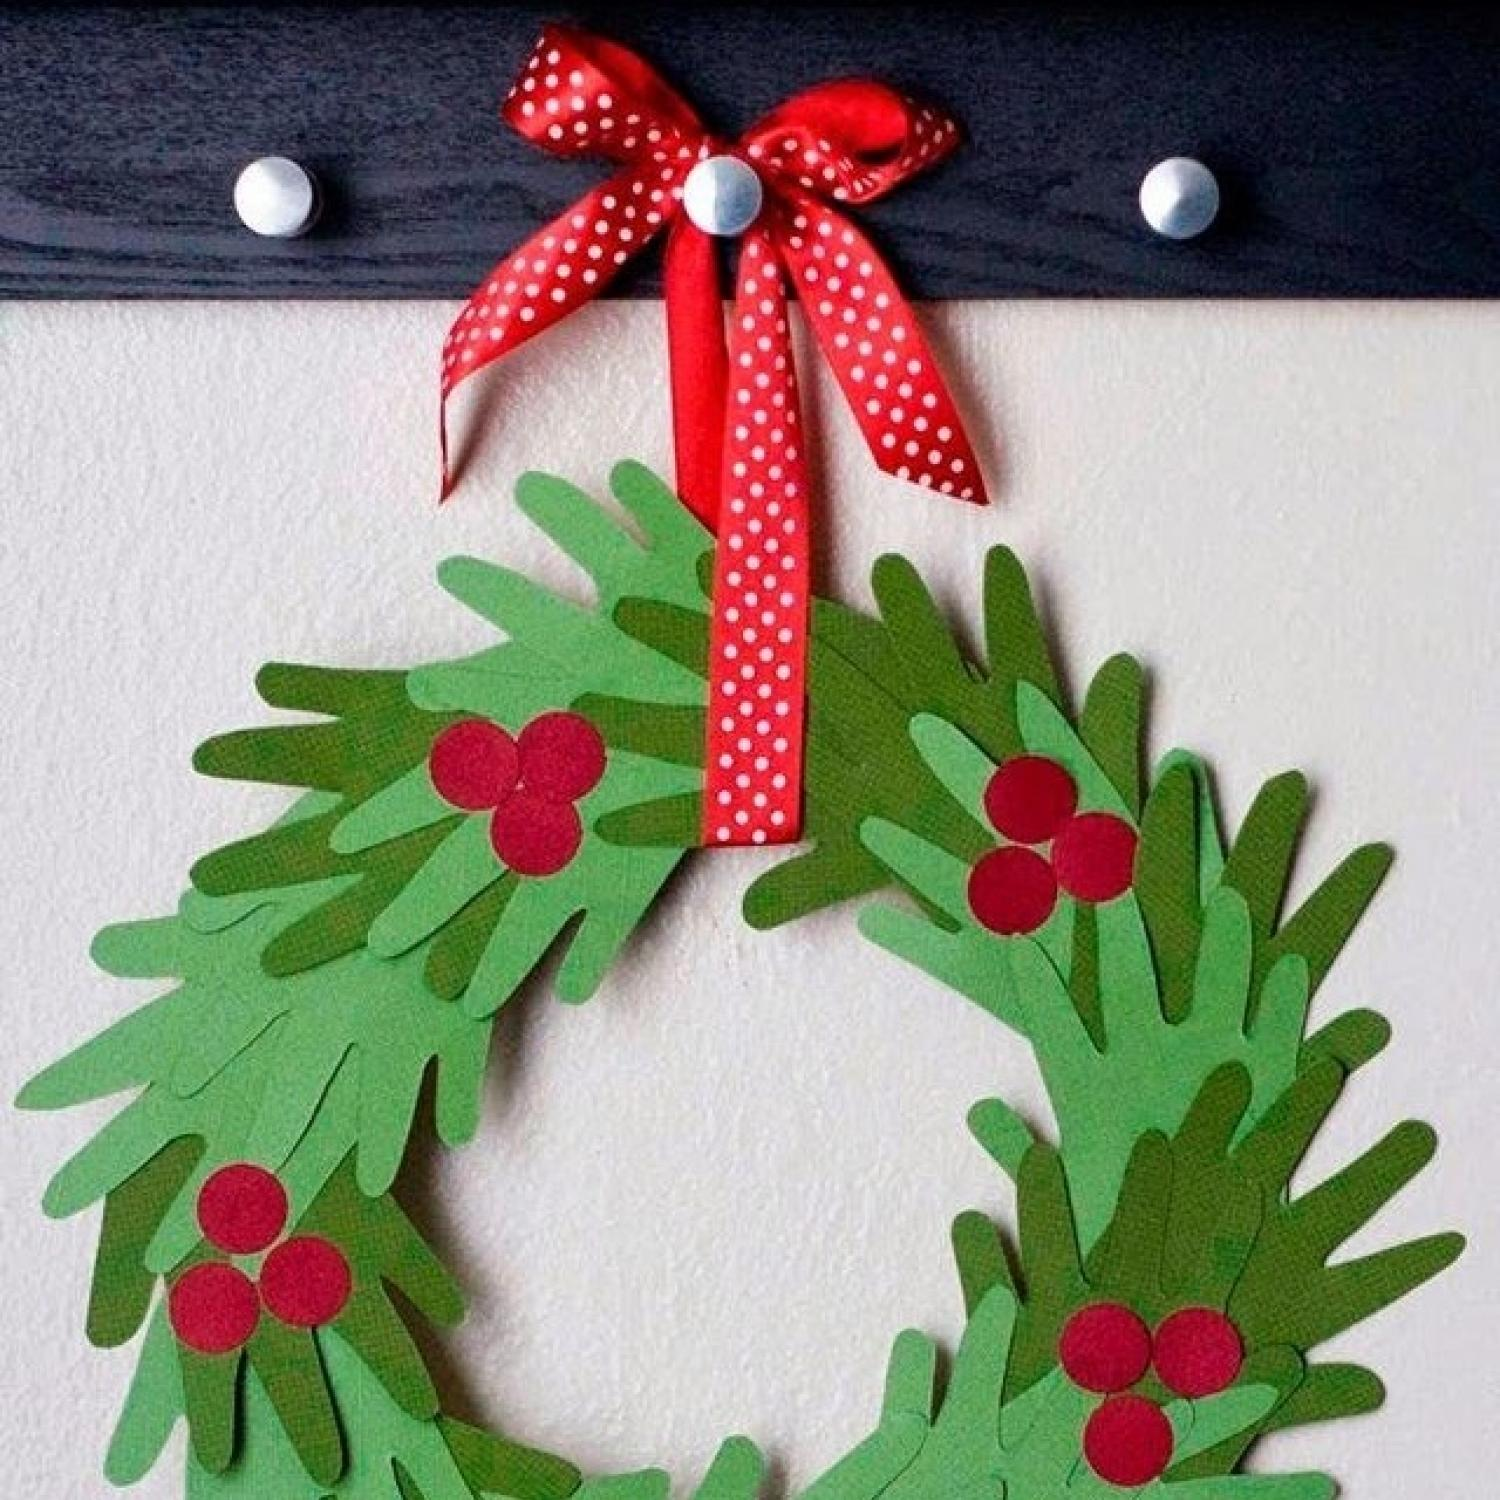 Christmas Craft Ideas For 2nd Graders Part - 31: Christmas Craft Ideas Second Graders : Christmas Gifts For Parents From  Third Graders